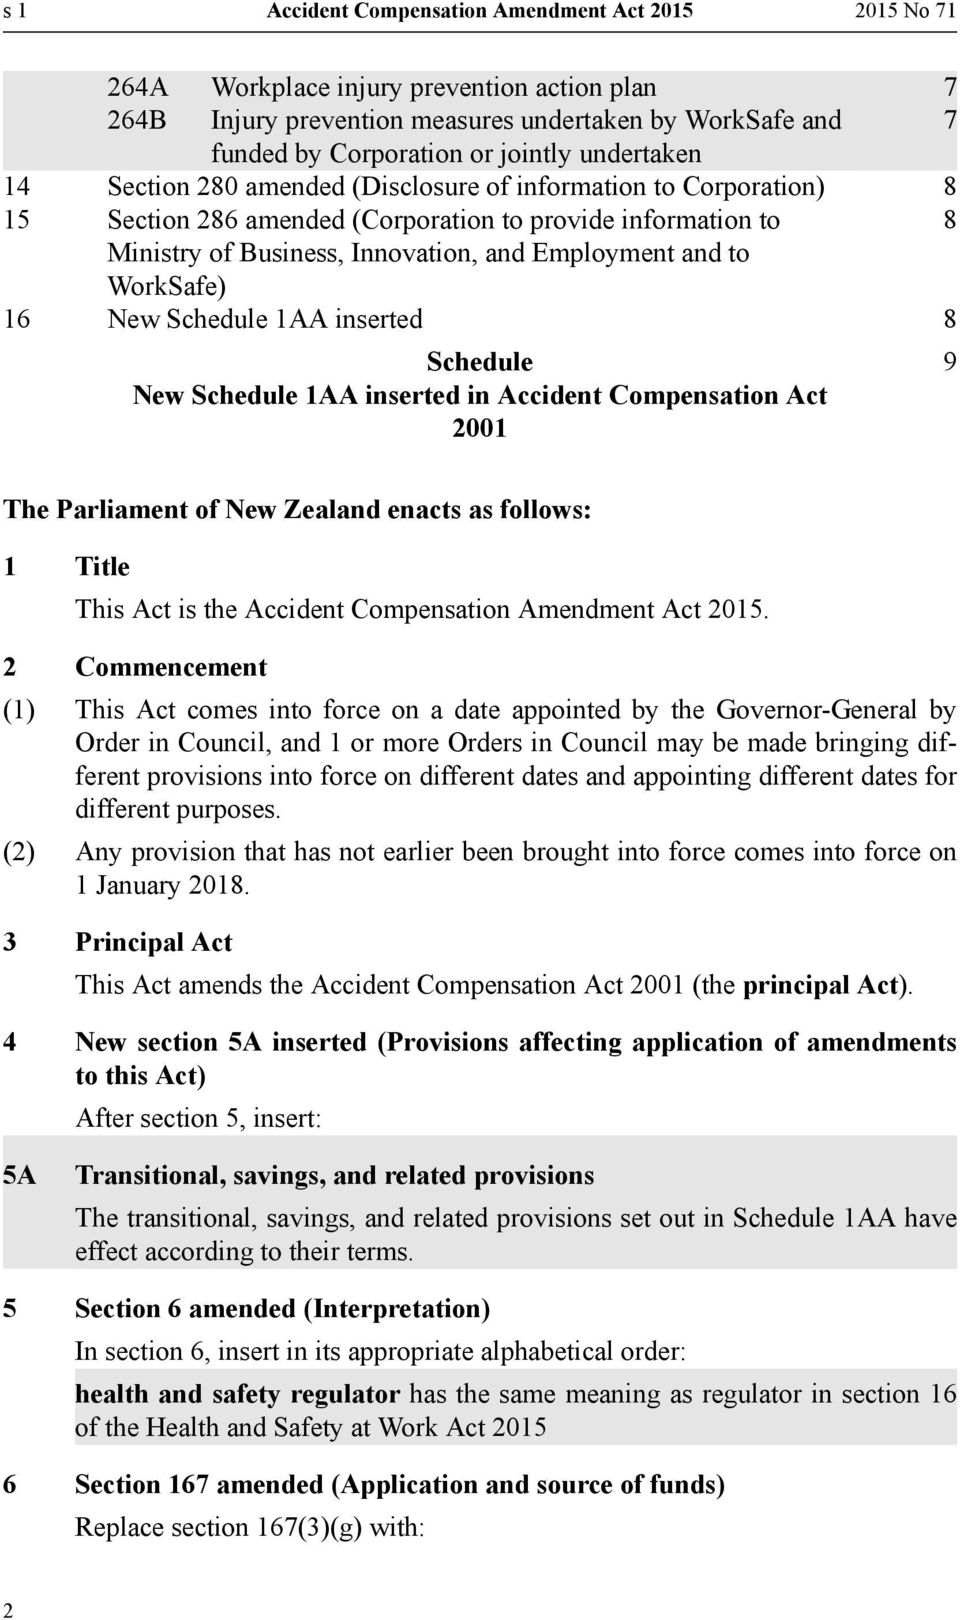 WorkSafe) 16 New Schedule 1AA inserted 8 Schedule New Schedule 1AA inserted in Accident Compensation Act 2001 9 The Parliament of New Zealand enacts as follows: 1 Title This Act is the Accident